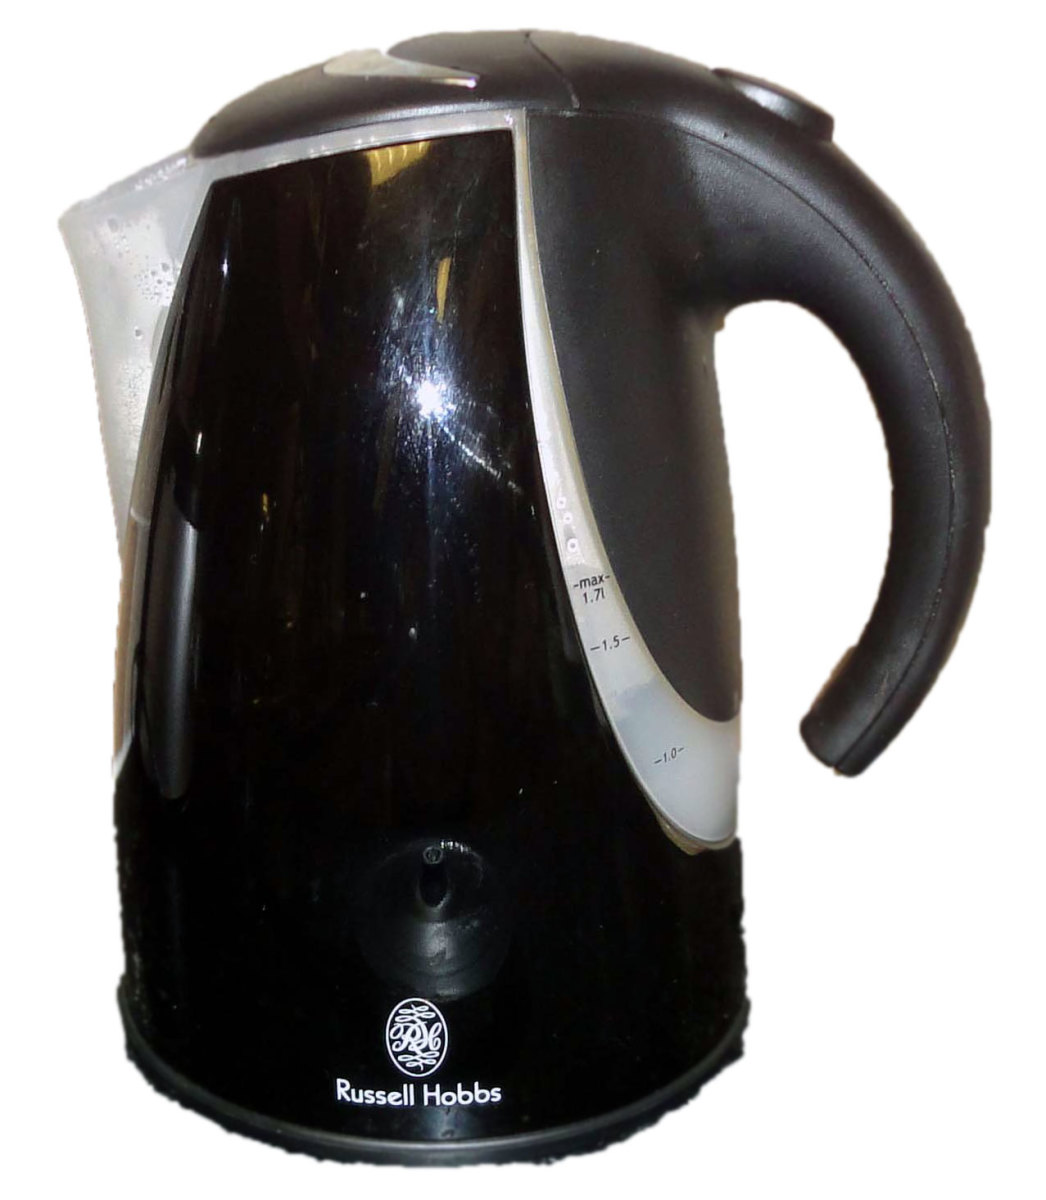 The Russlel Hobbs Kettle